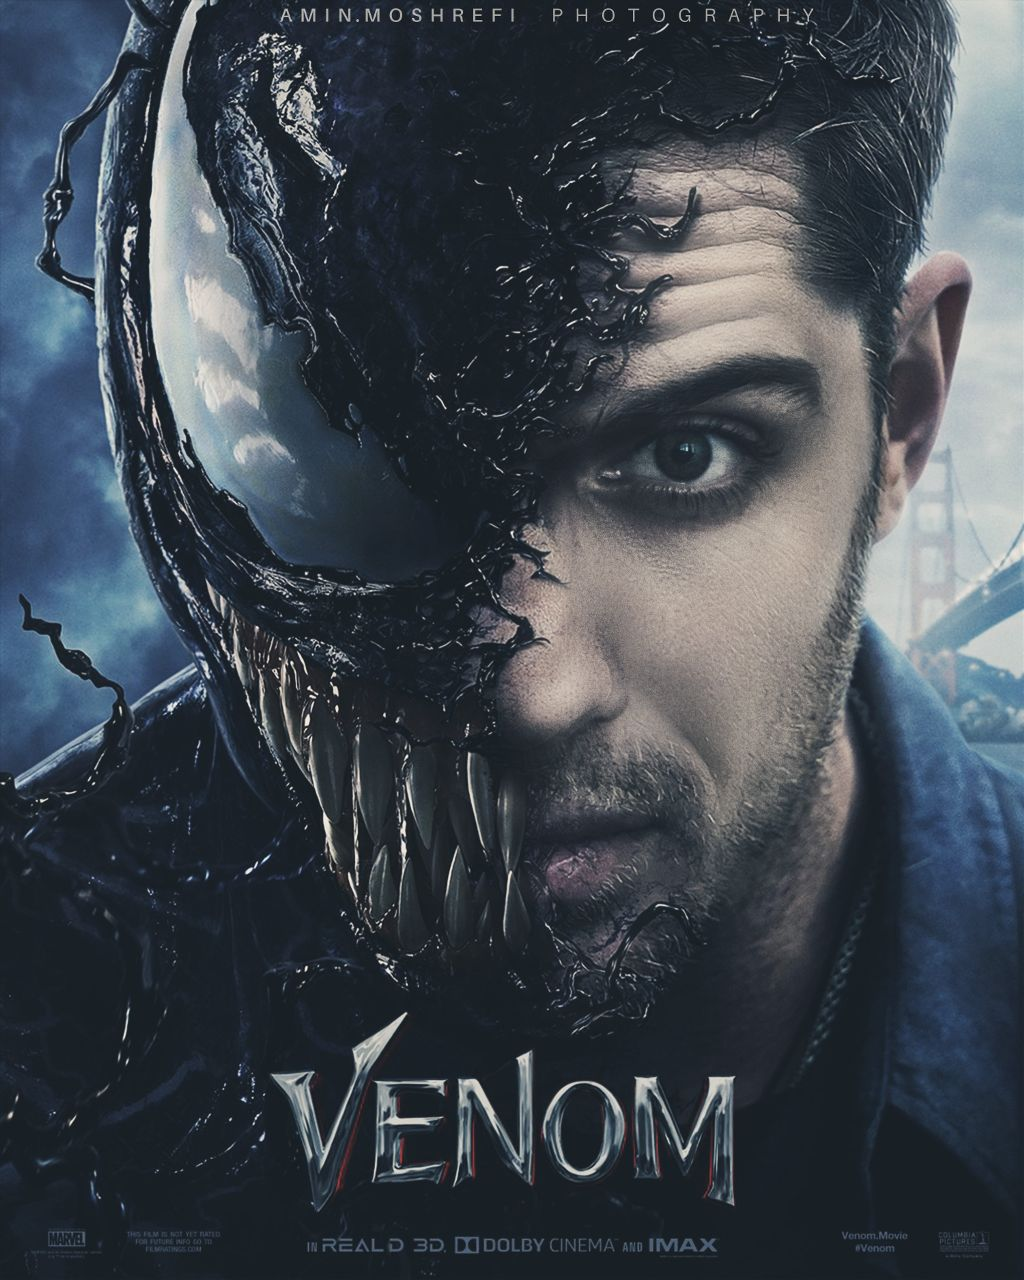 Venom Movie Poster😎😂